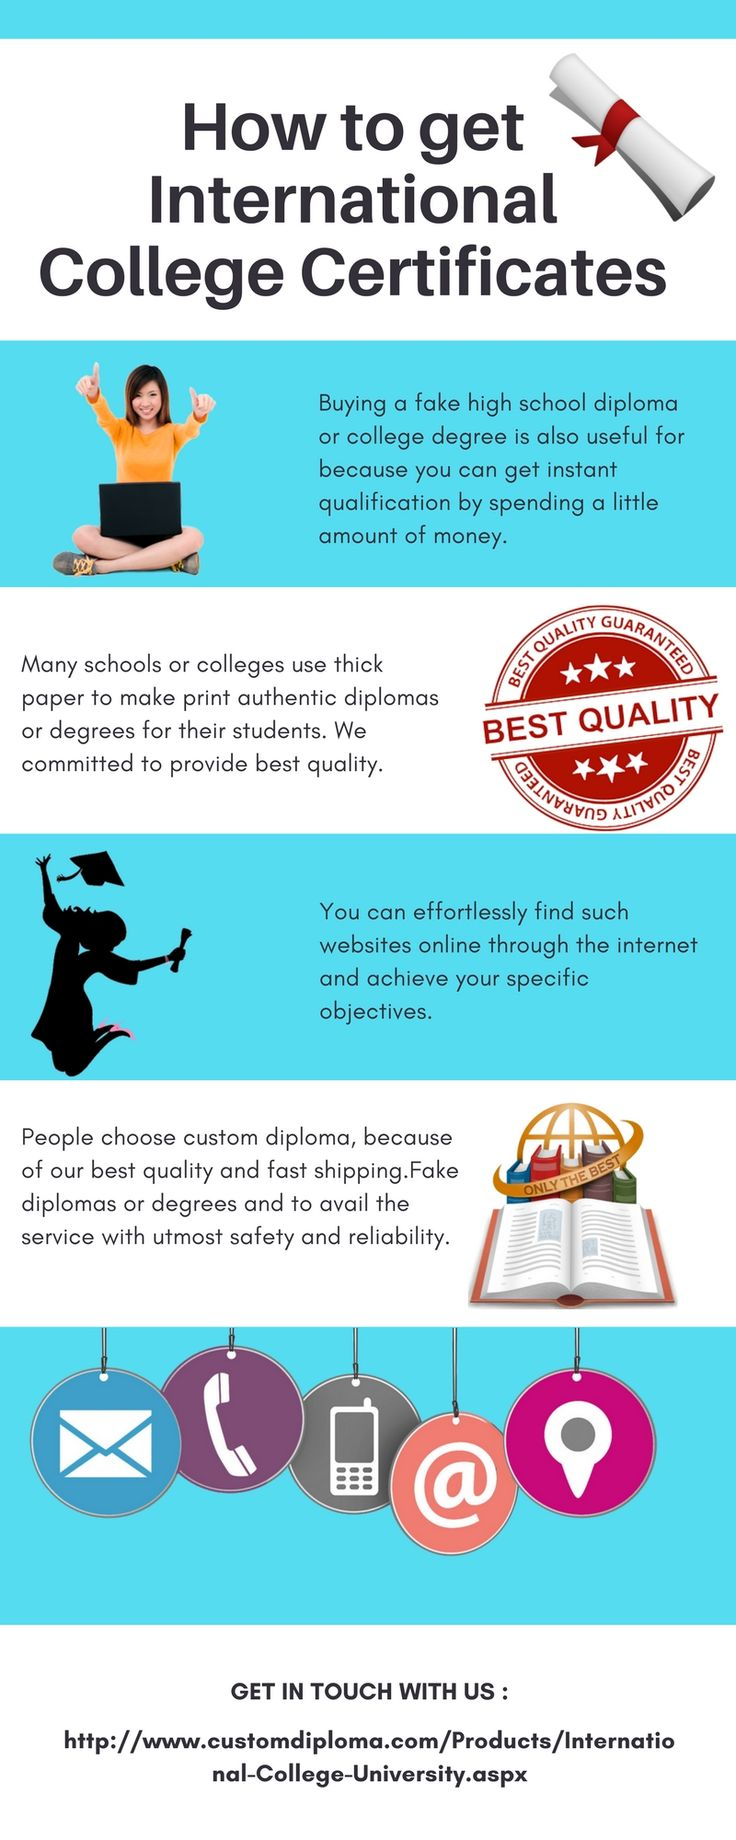 Best 25 certificates online ideas on pinterest free college why wait for someone else to make your diploma make your own today design college diplomauniversity diplomacertificates online xflitez Image collections